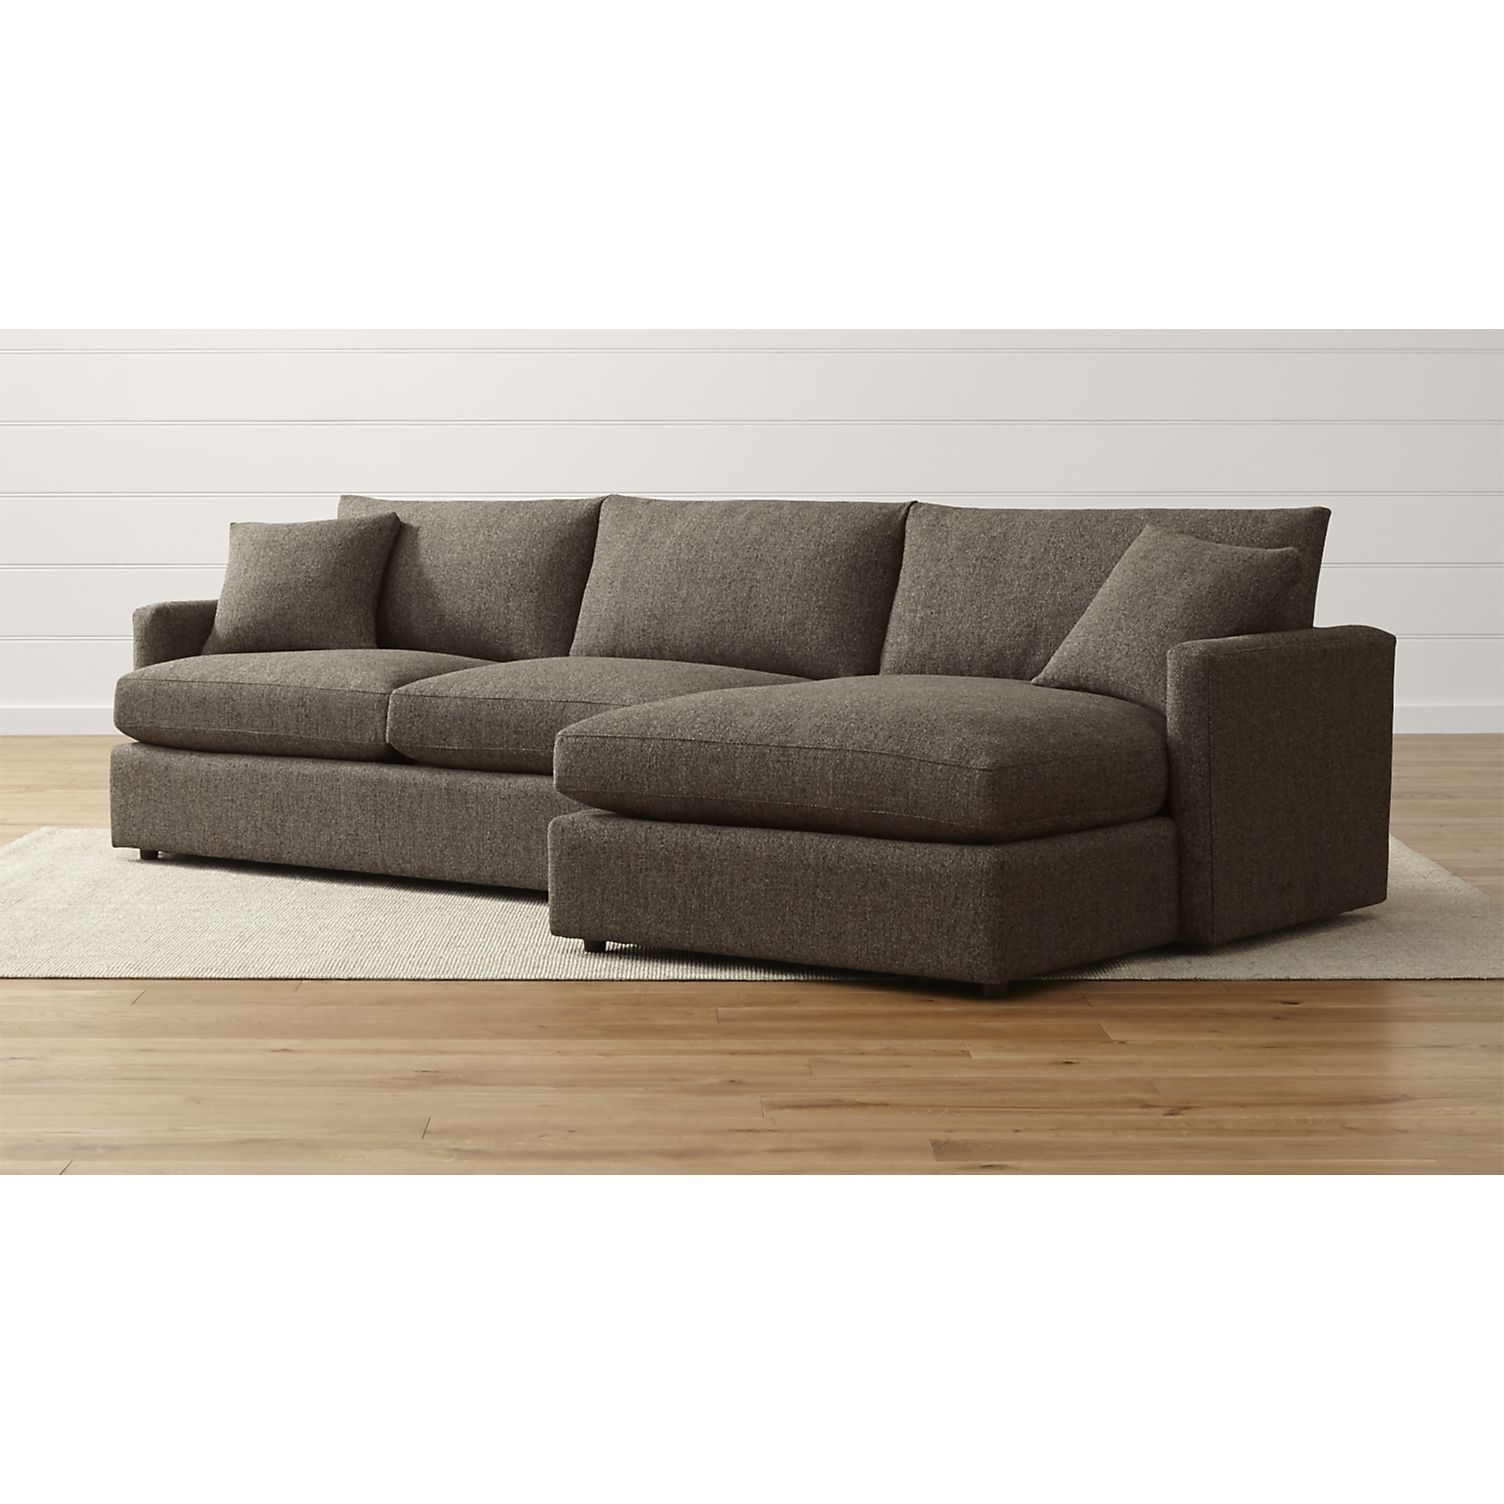 Elegant Futon Sectional Sofa Bed Pictures — Beautiful Furniture Home intended for Arrowmask 2 Piece Sectionals With Sleeper & Right Facing Chaise (Image 6 of 30)